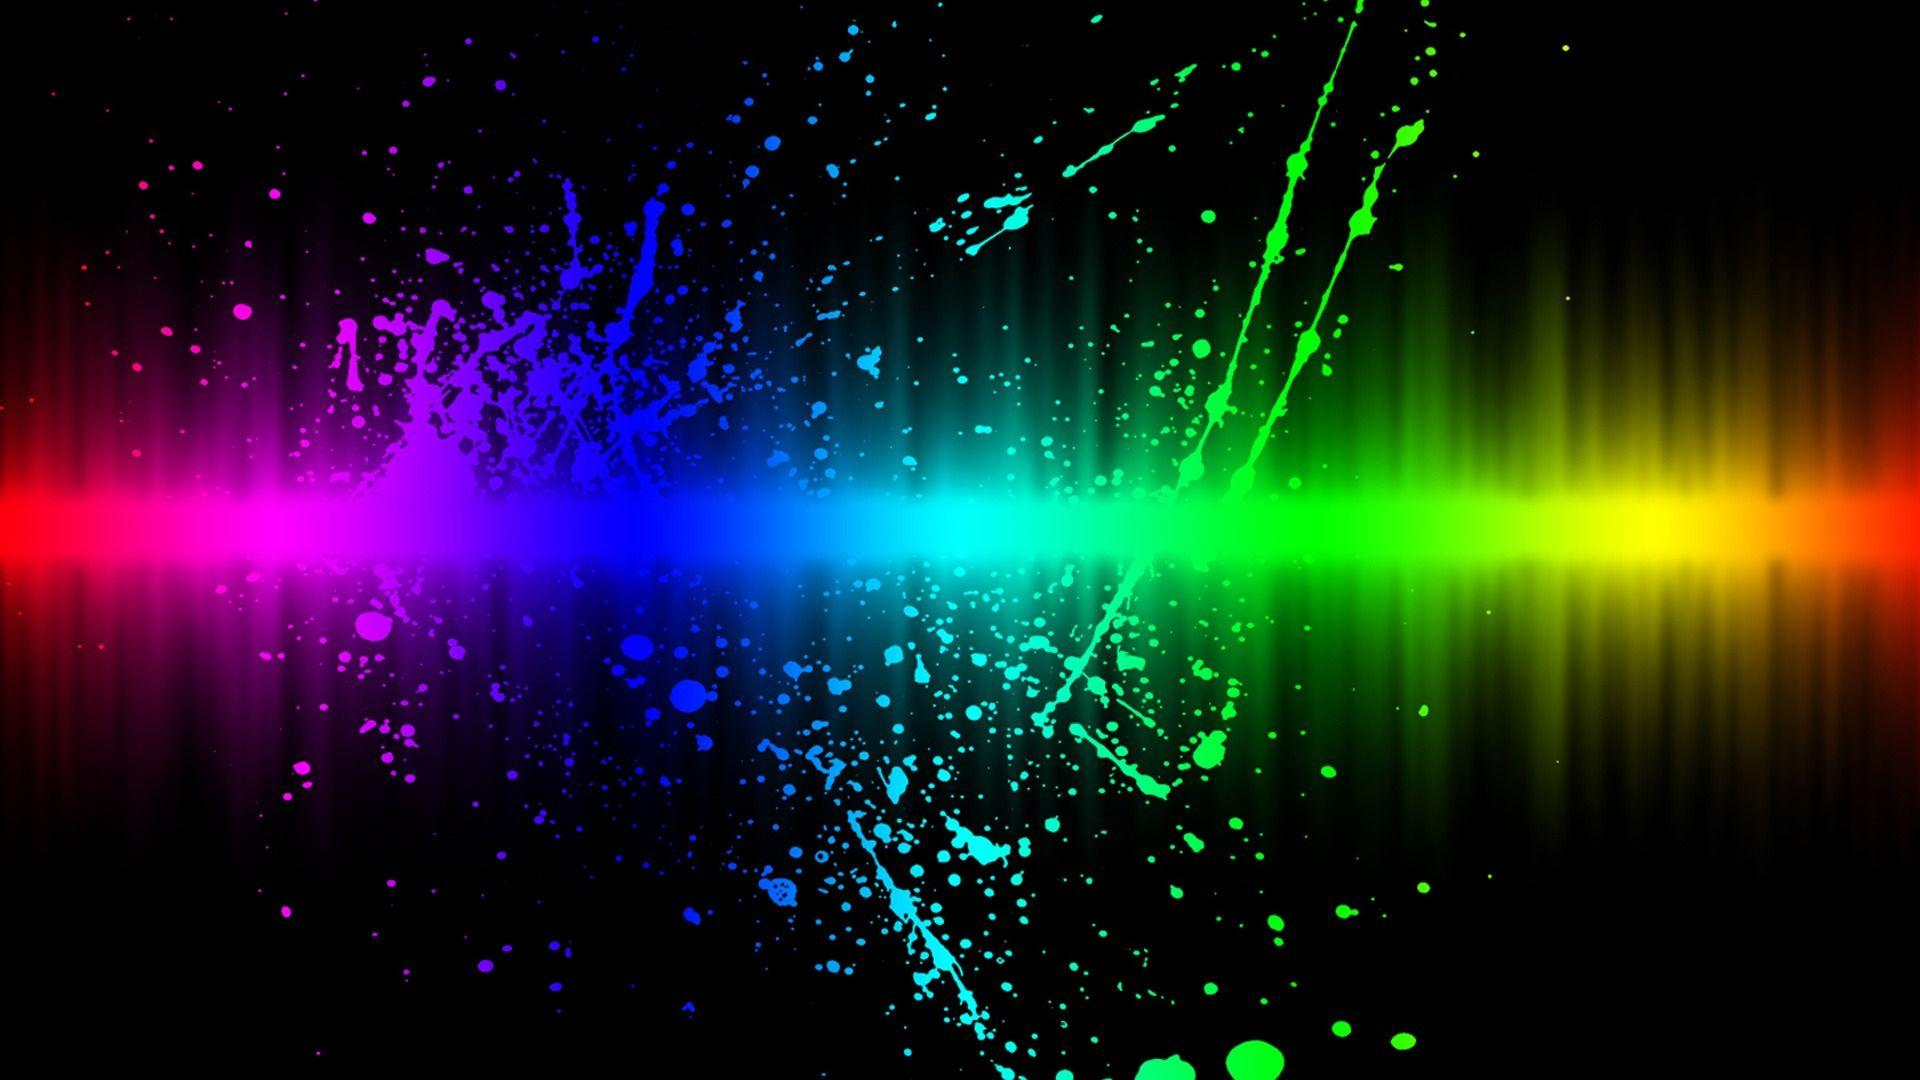 Neon Lights Wallpaper : Neon Lights Wallpapers - Wallpaper Cave